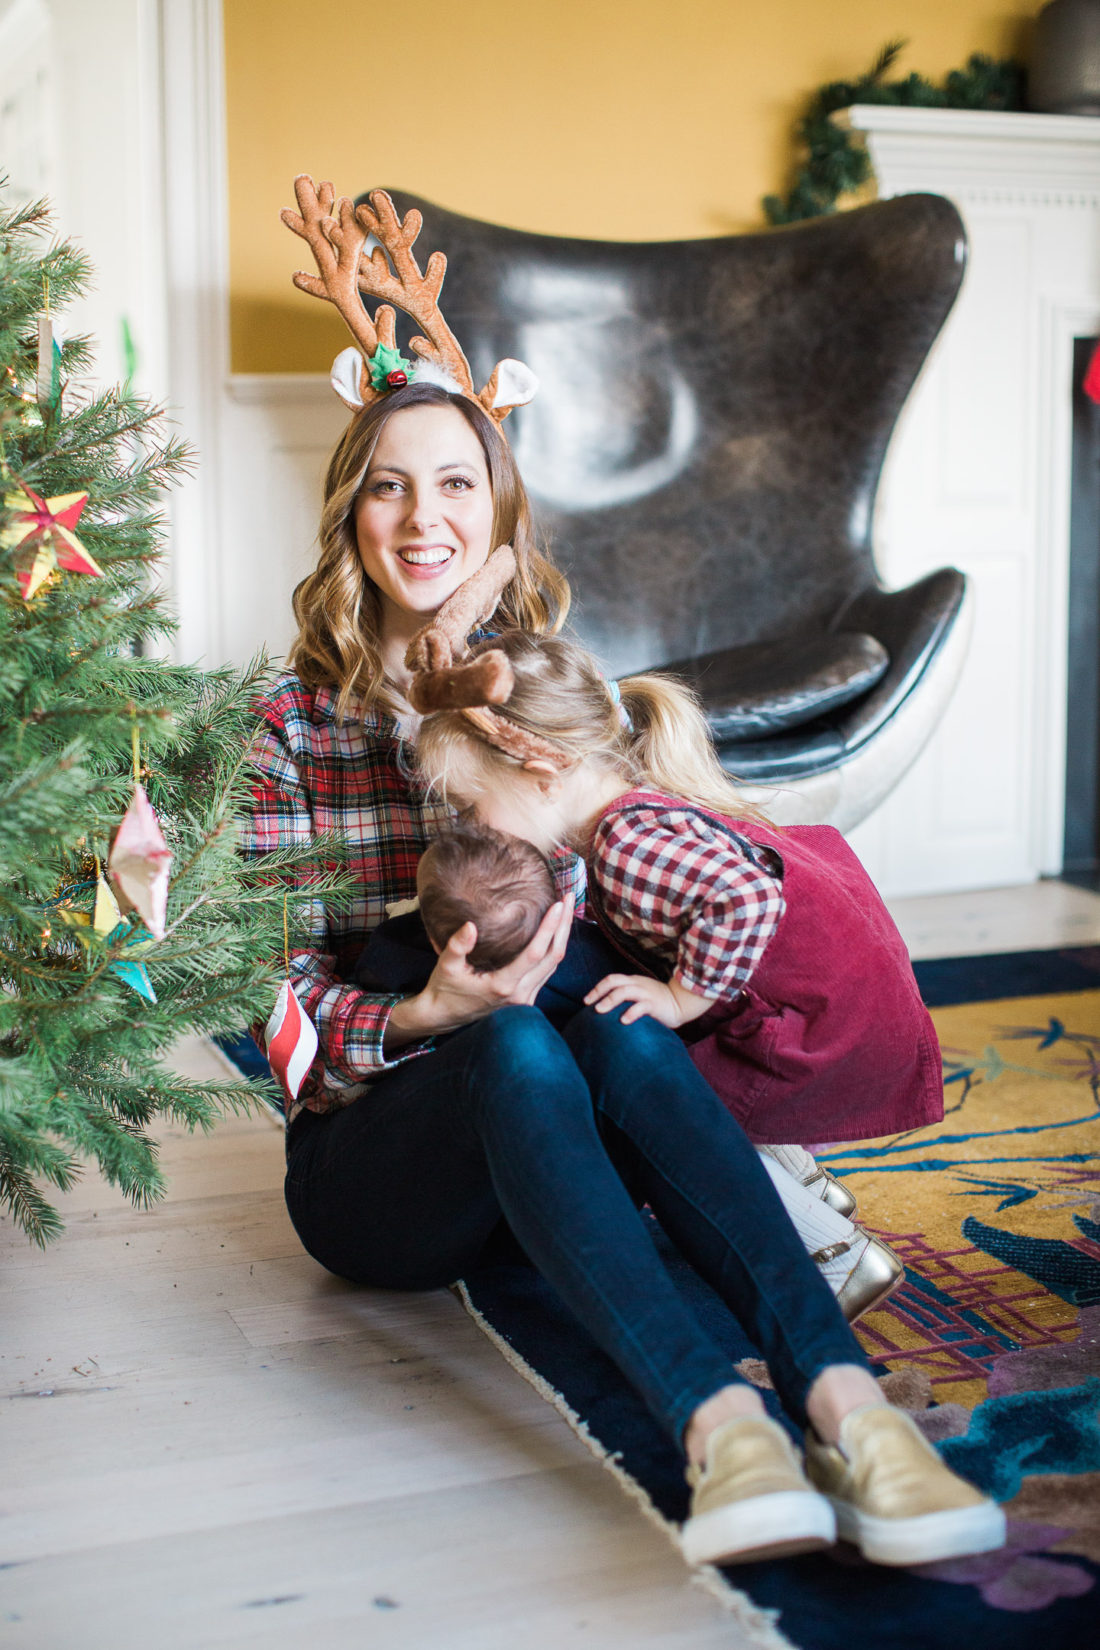 Eva Amurri Martino's toddler daughter Marlowe kisses her baby brother next to the Christmas tree